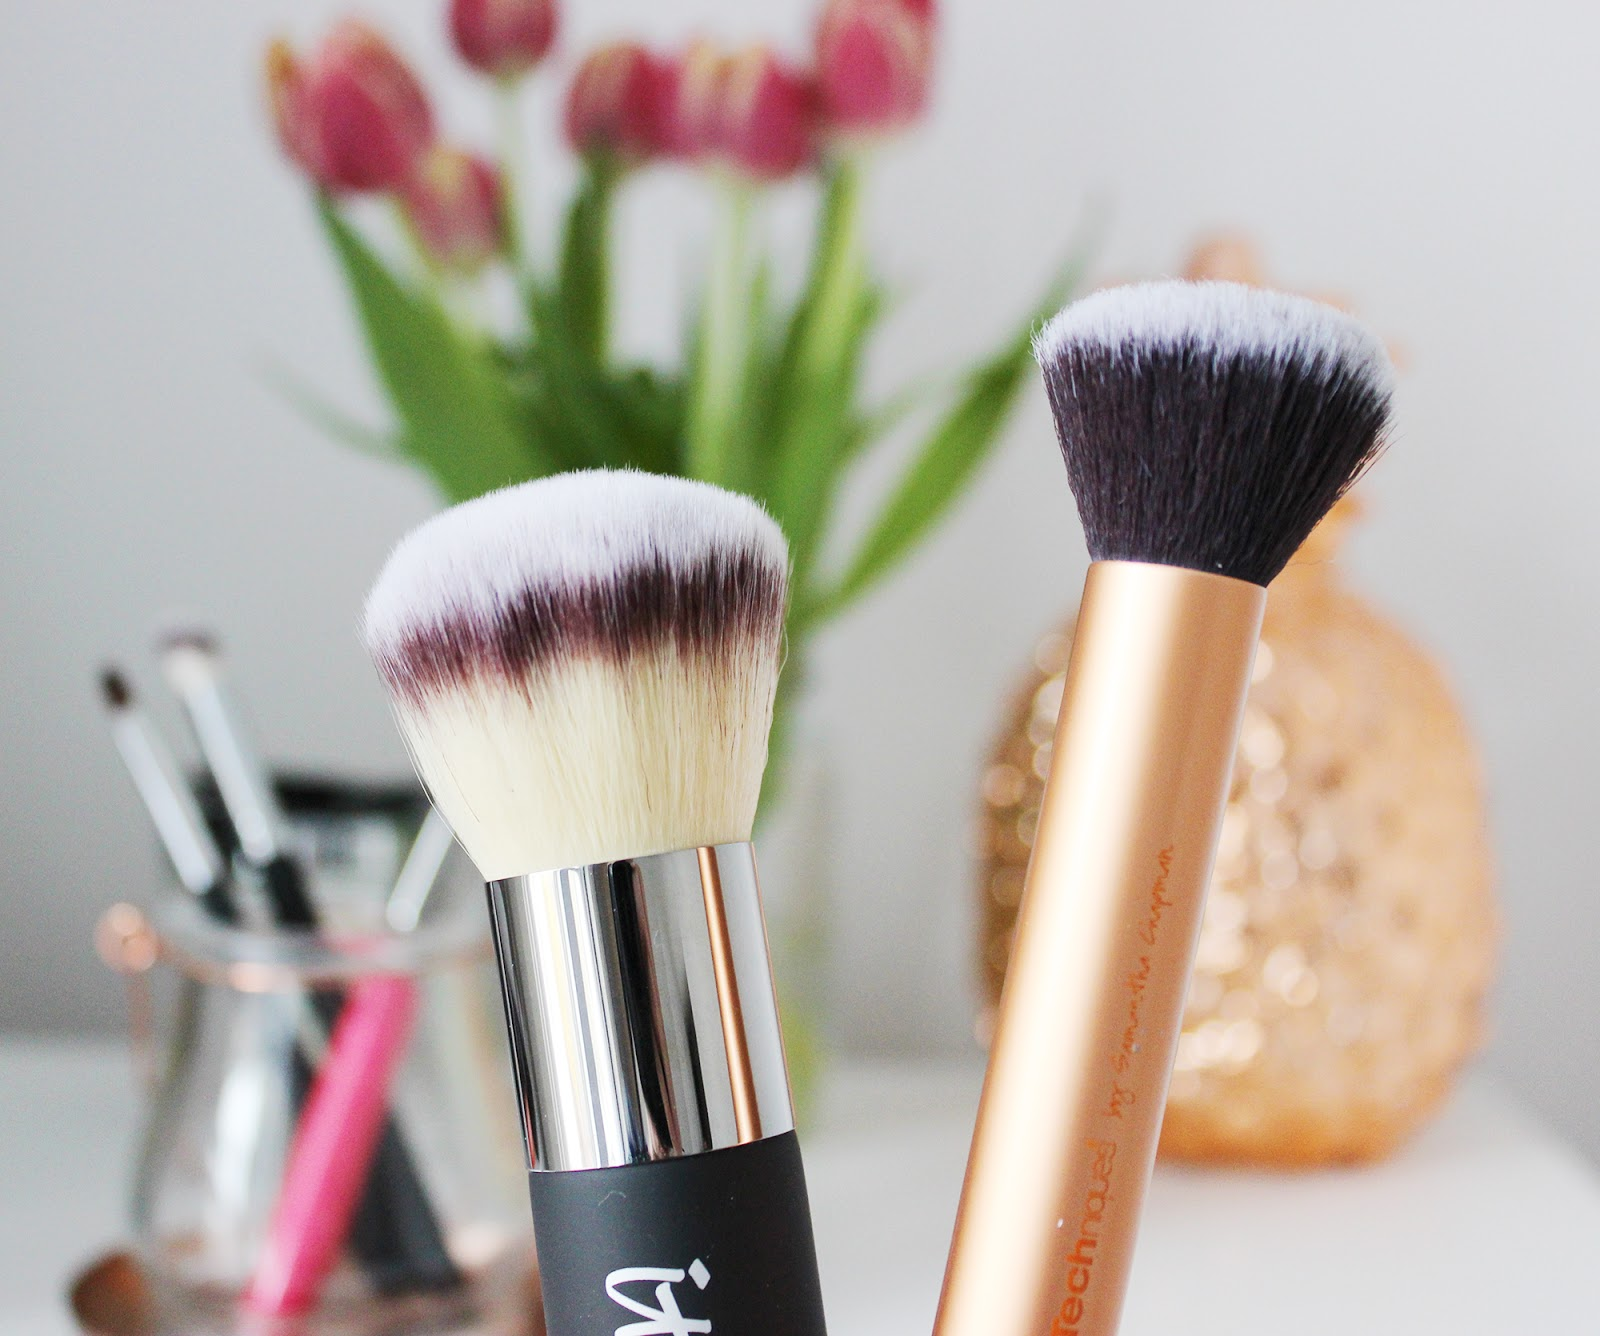 5 affordable makeup brushes from Zoeva, Real Techniques, Crownbrush, IT cosmetics